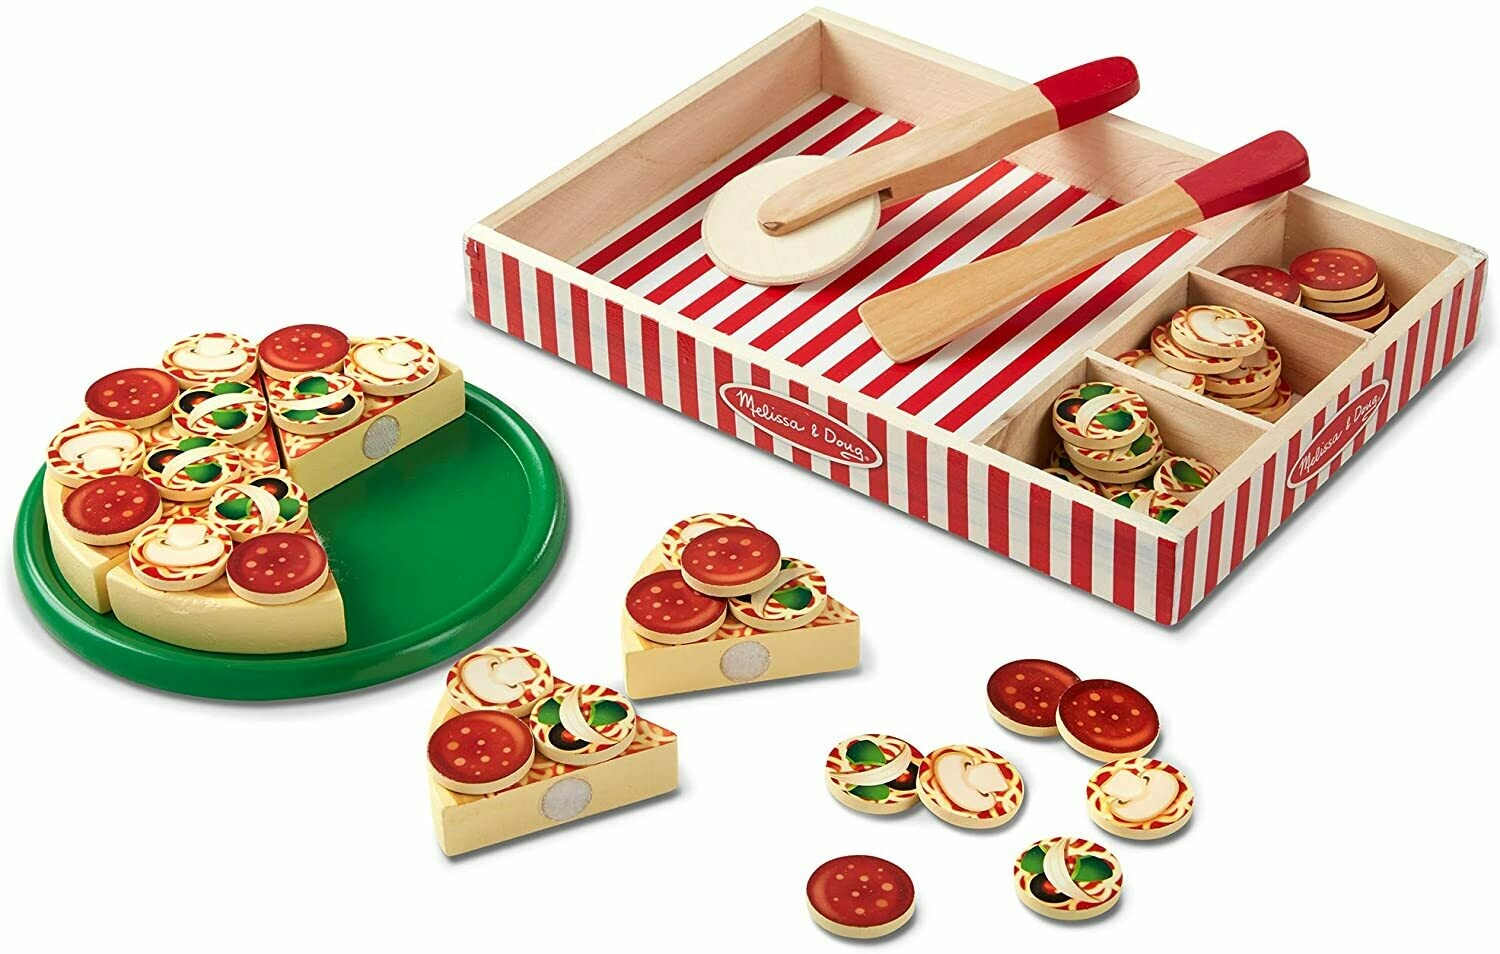 Melissa And Doug; Wooden Pizza